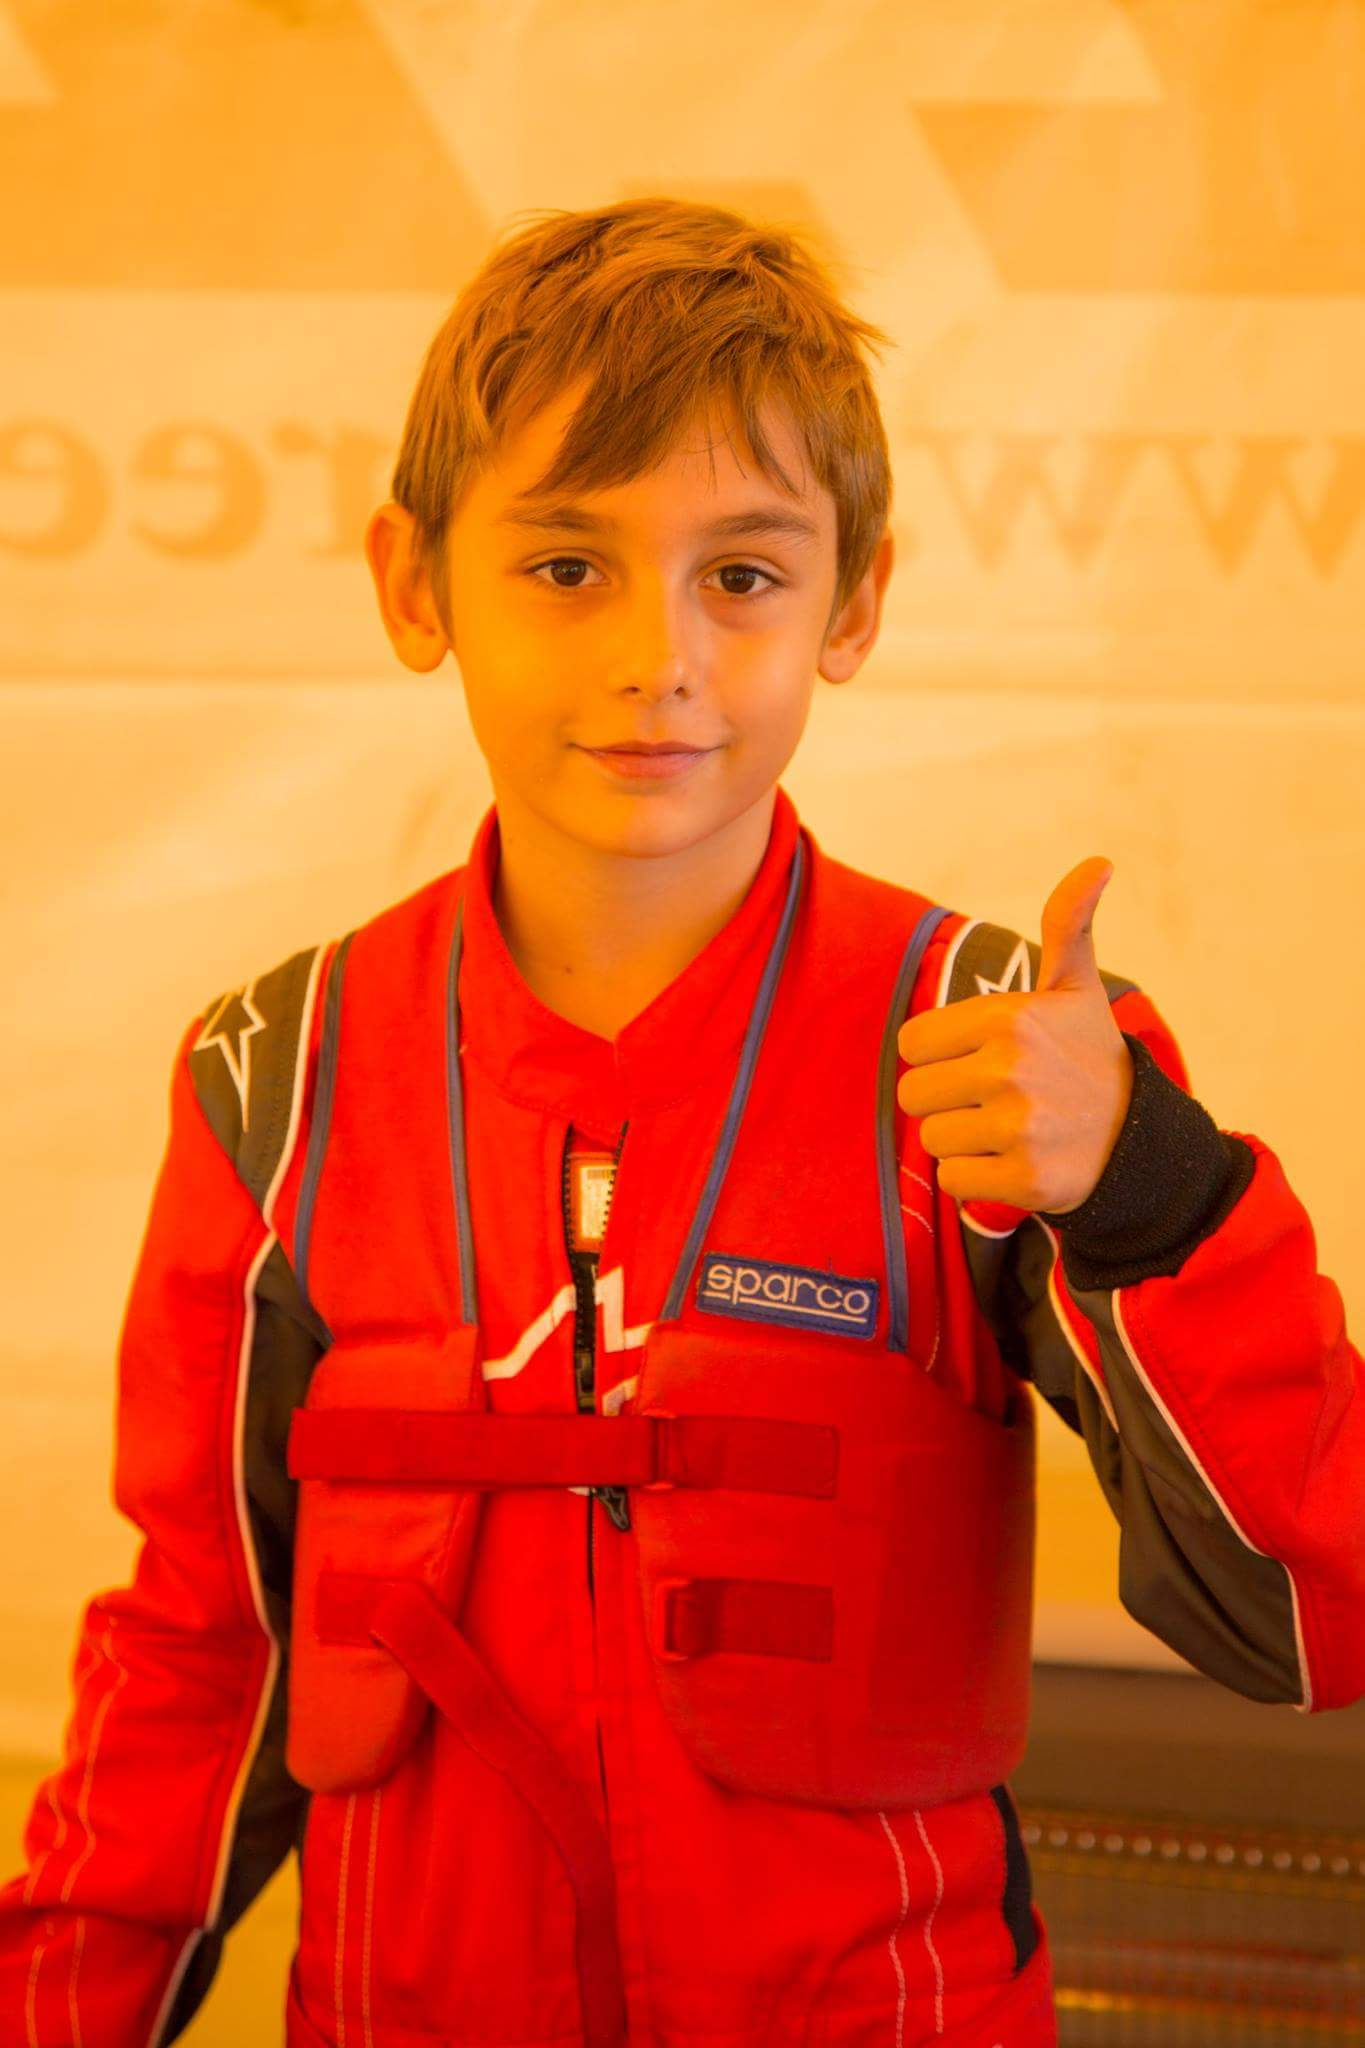 Our student Batı Ege Yıldırım's Success on Karting